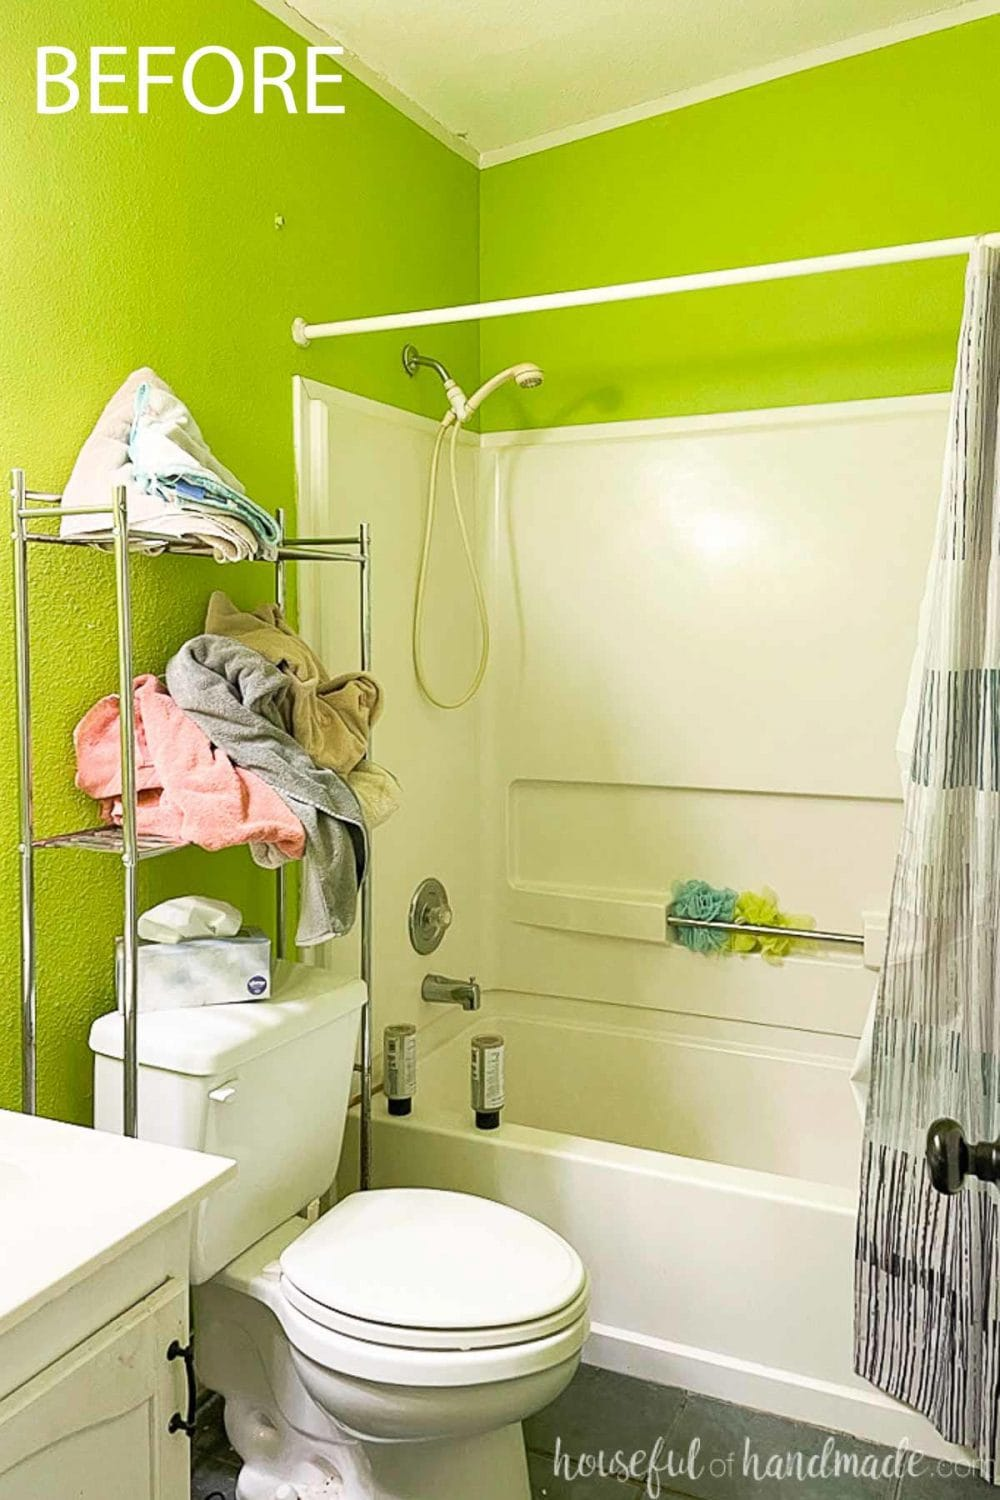 Before photo of the bathroom with vibrant green walls and bad shelving that is going to be remodeled for $100.